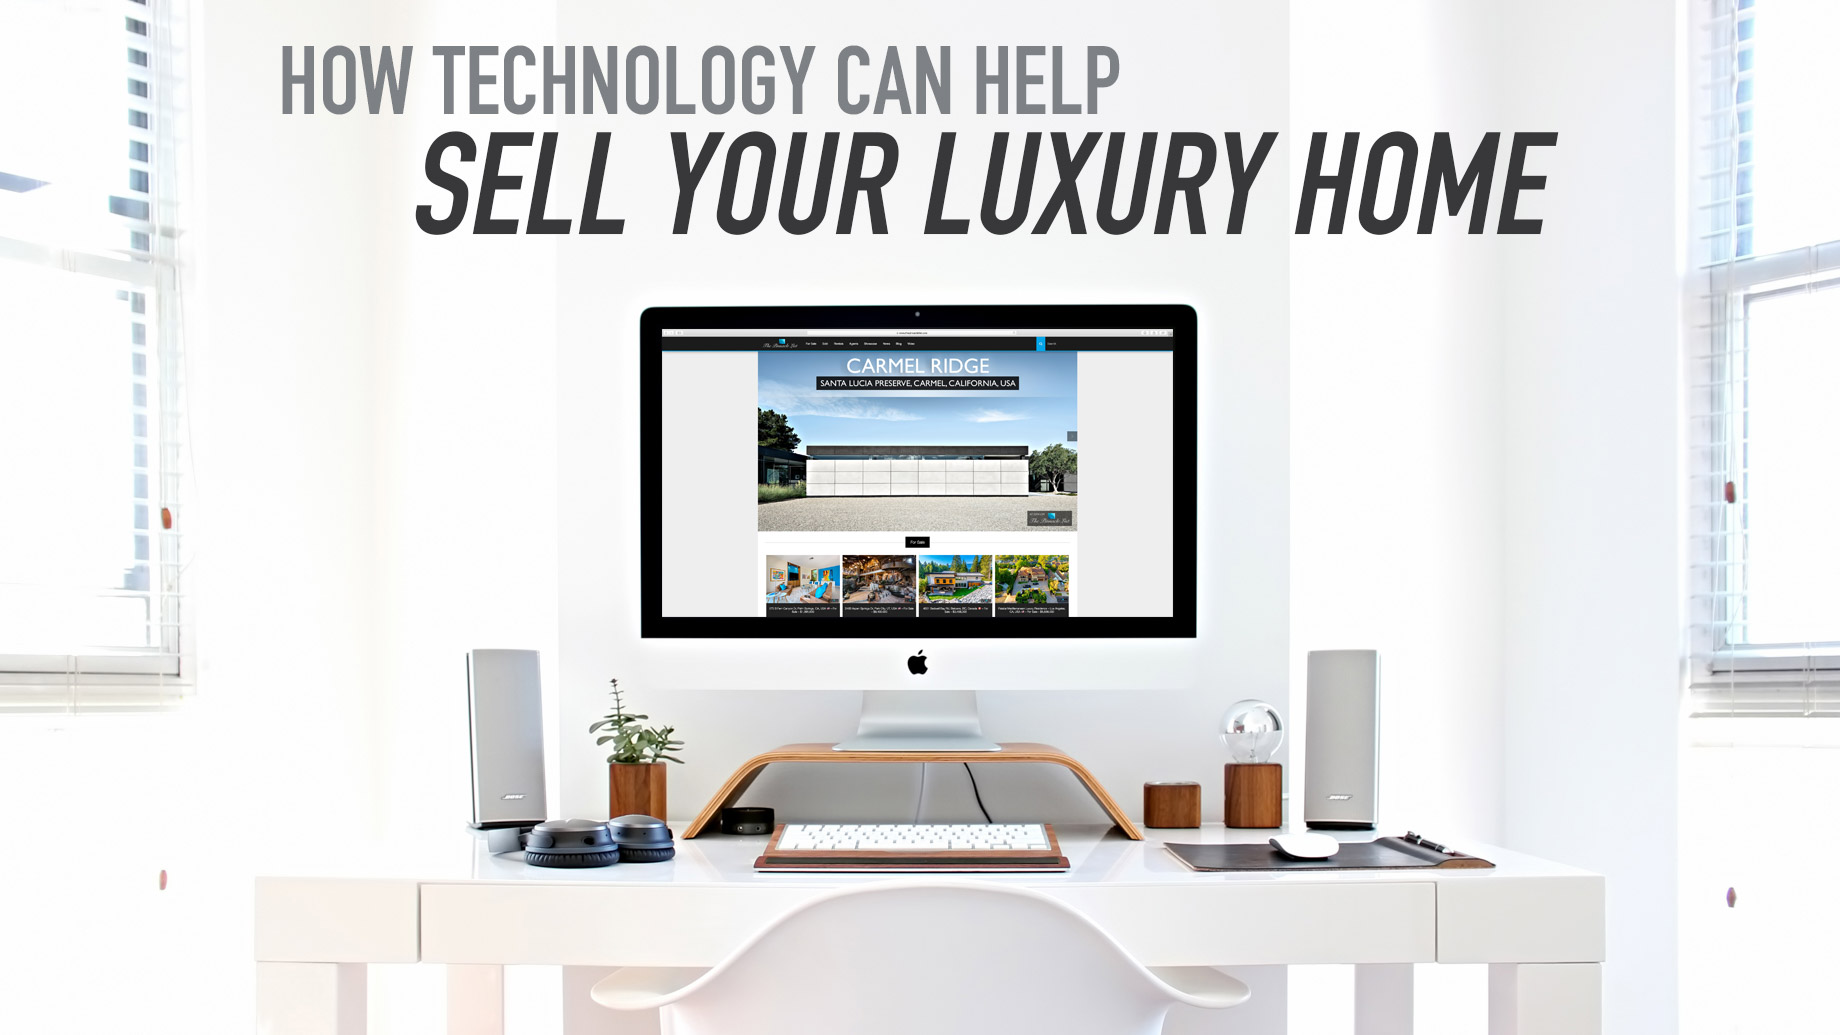 How Technology Can Help Sell Your Luxury Home